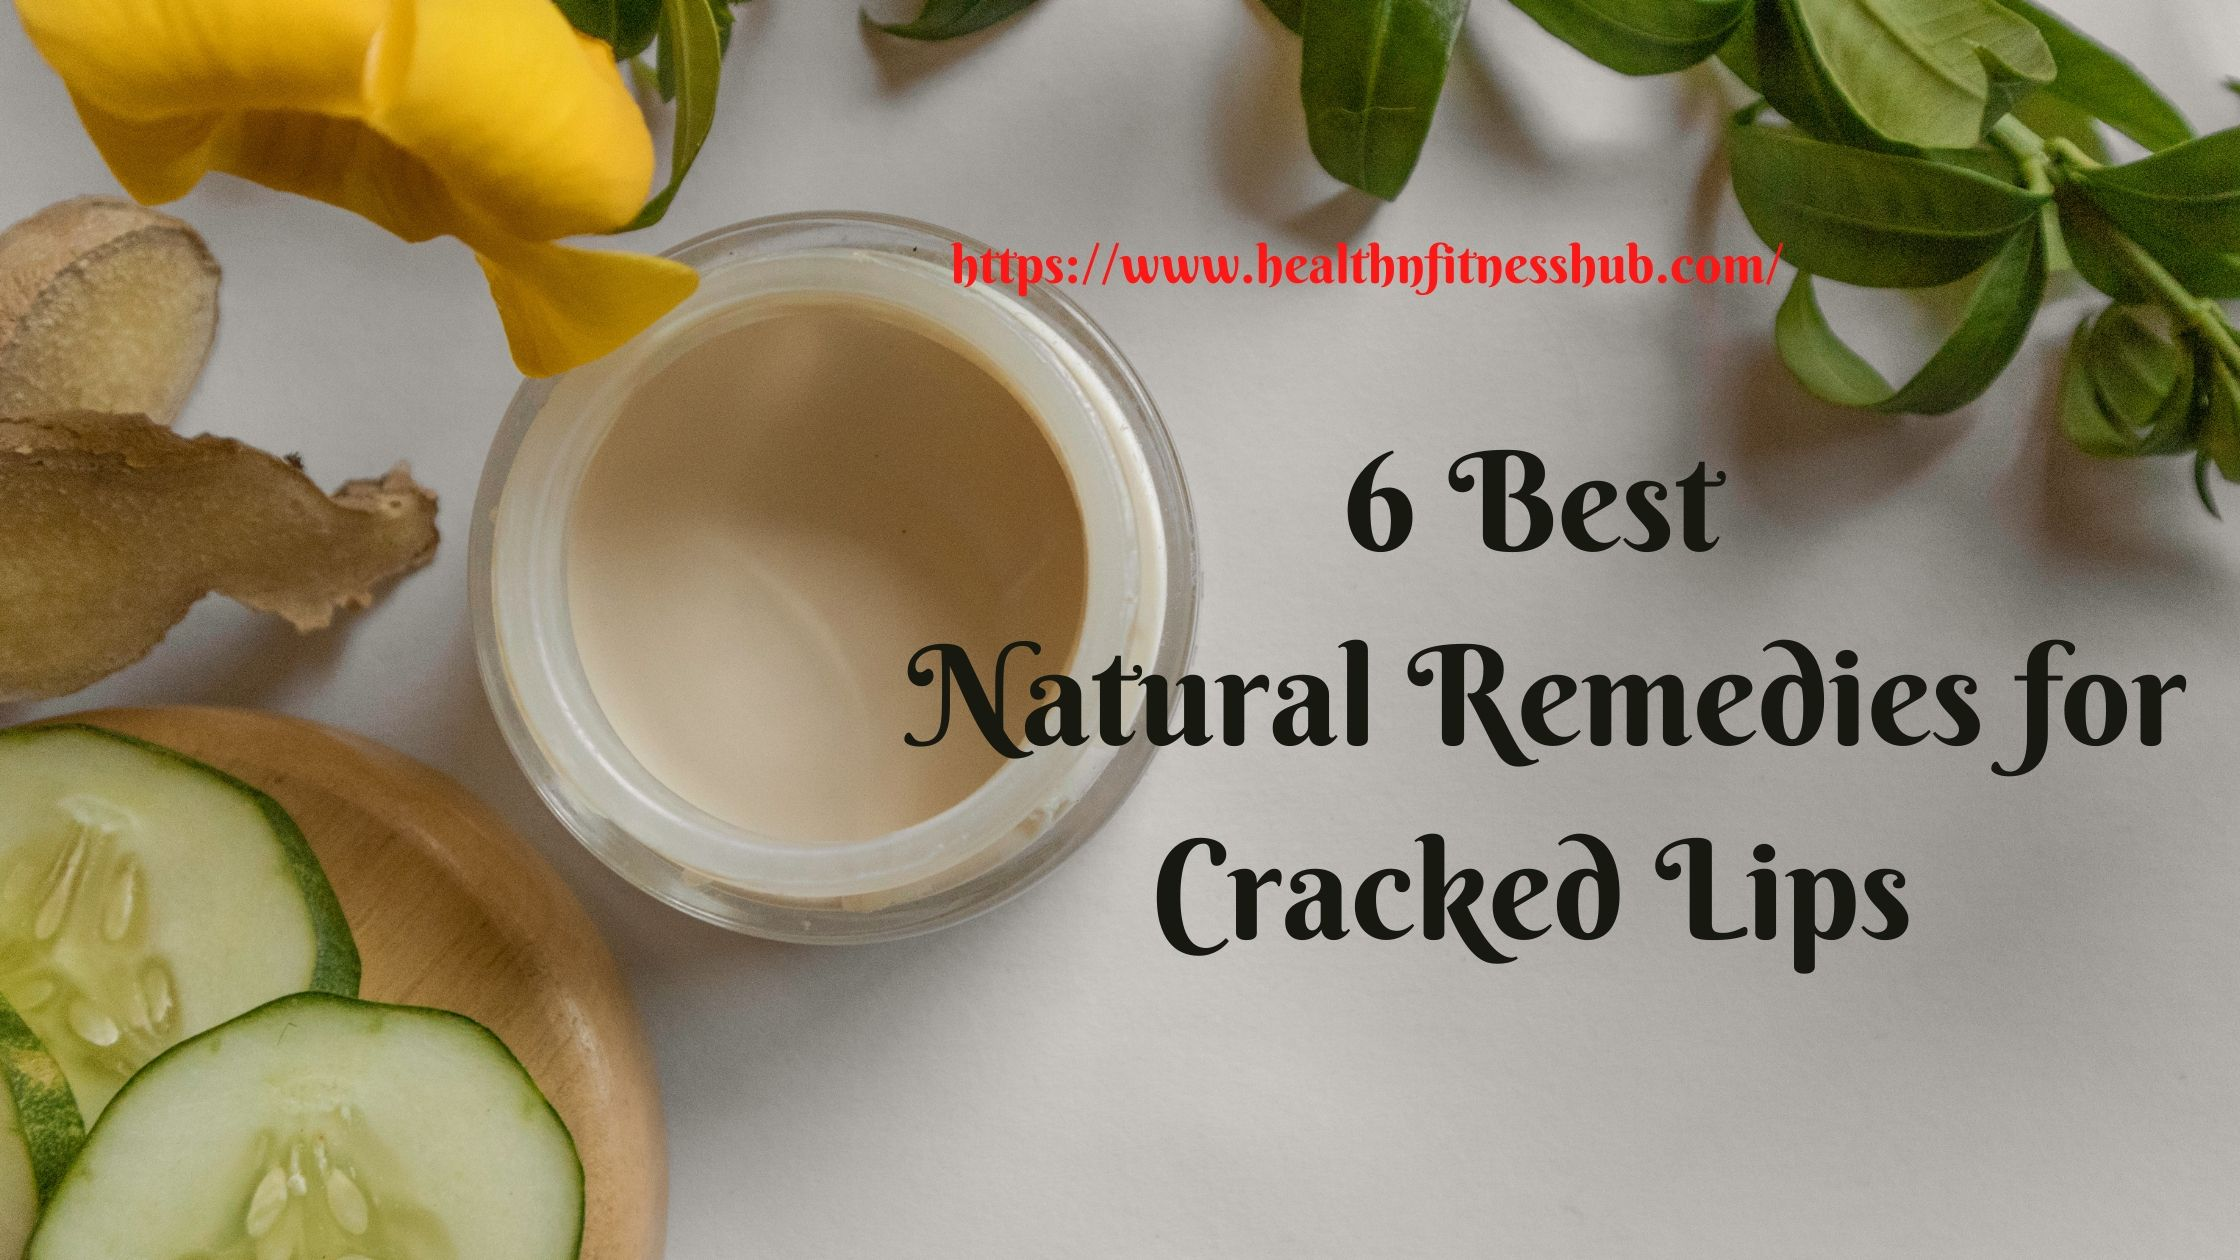 Natural Remedies for Cracked Lips